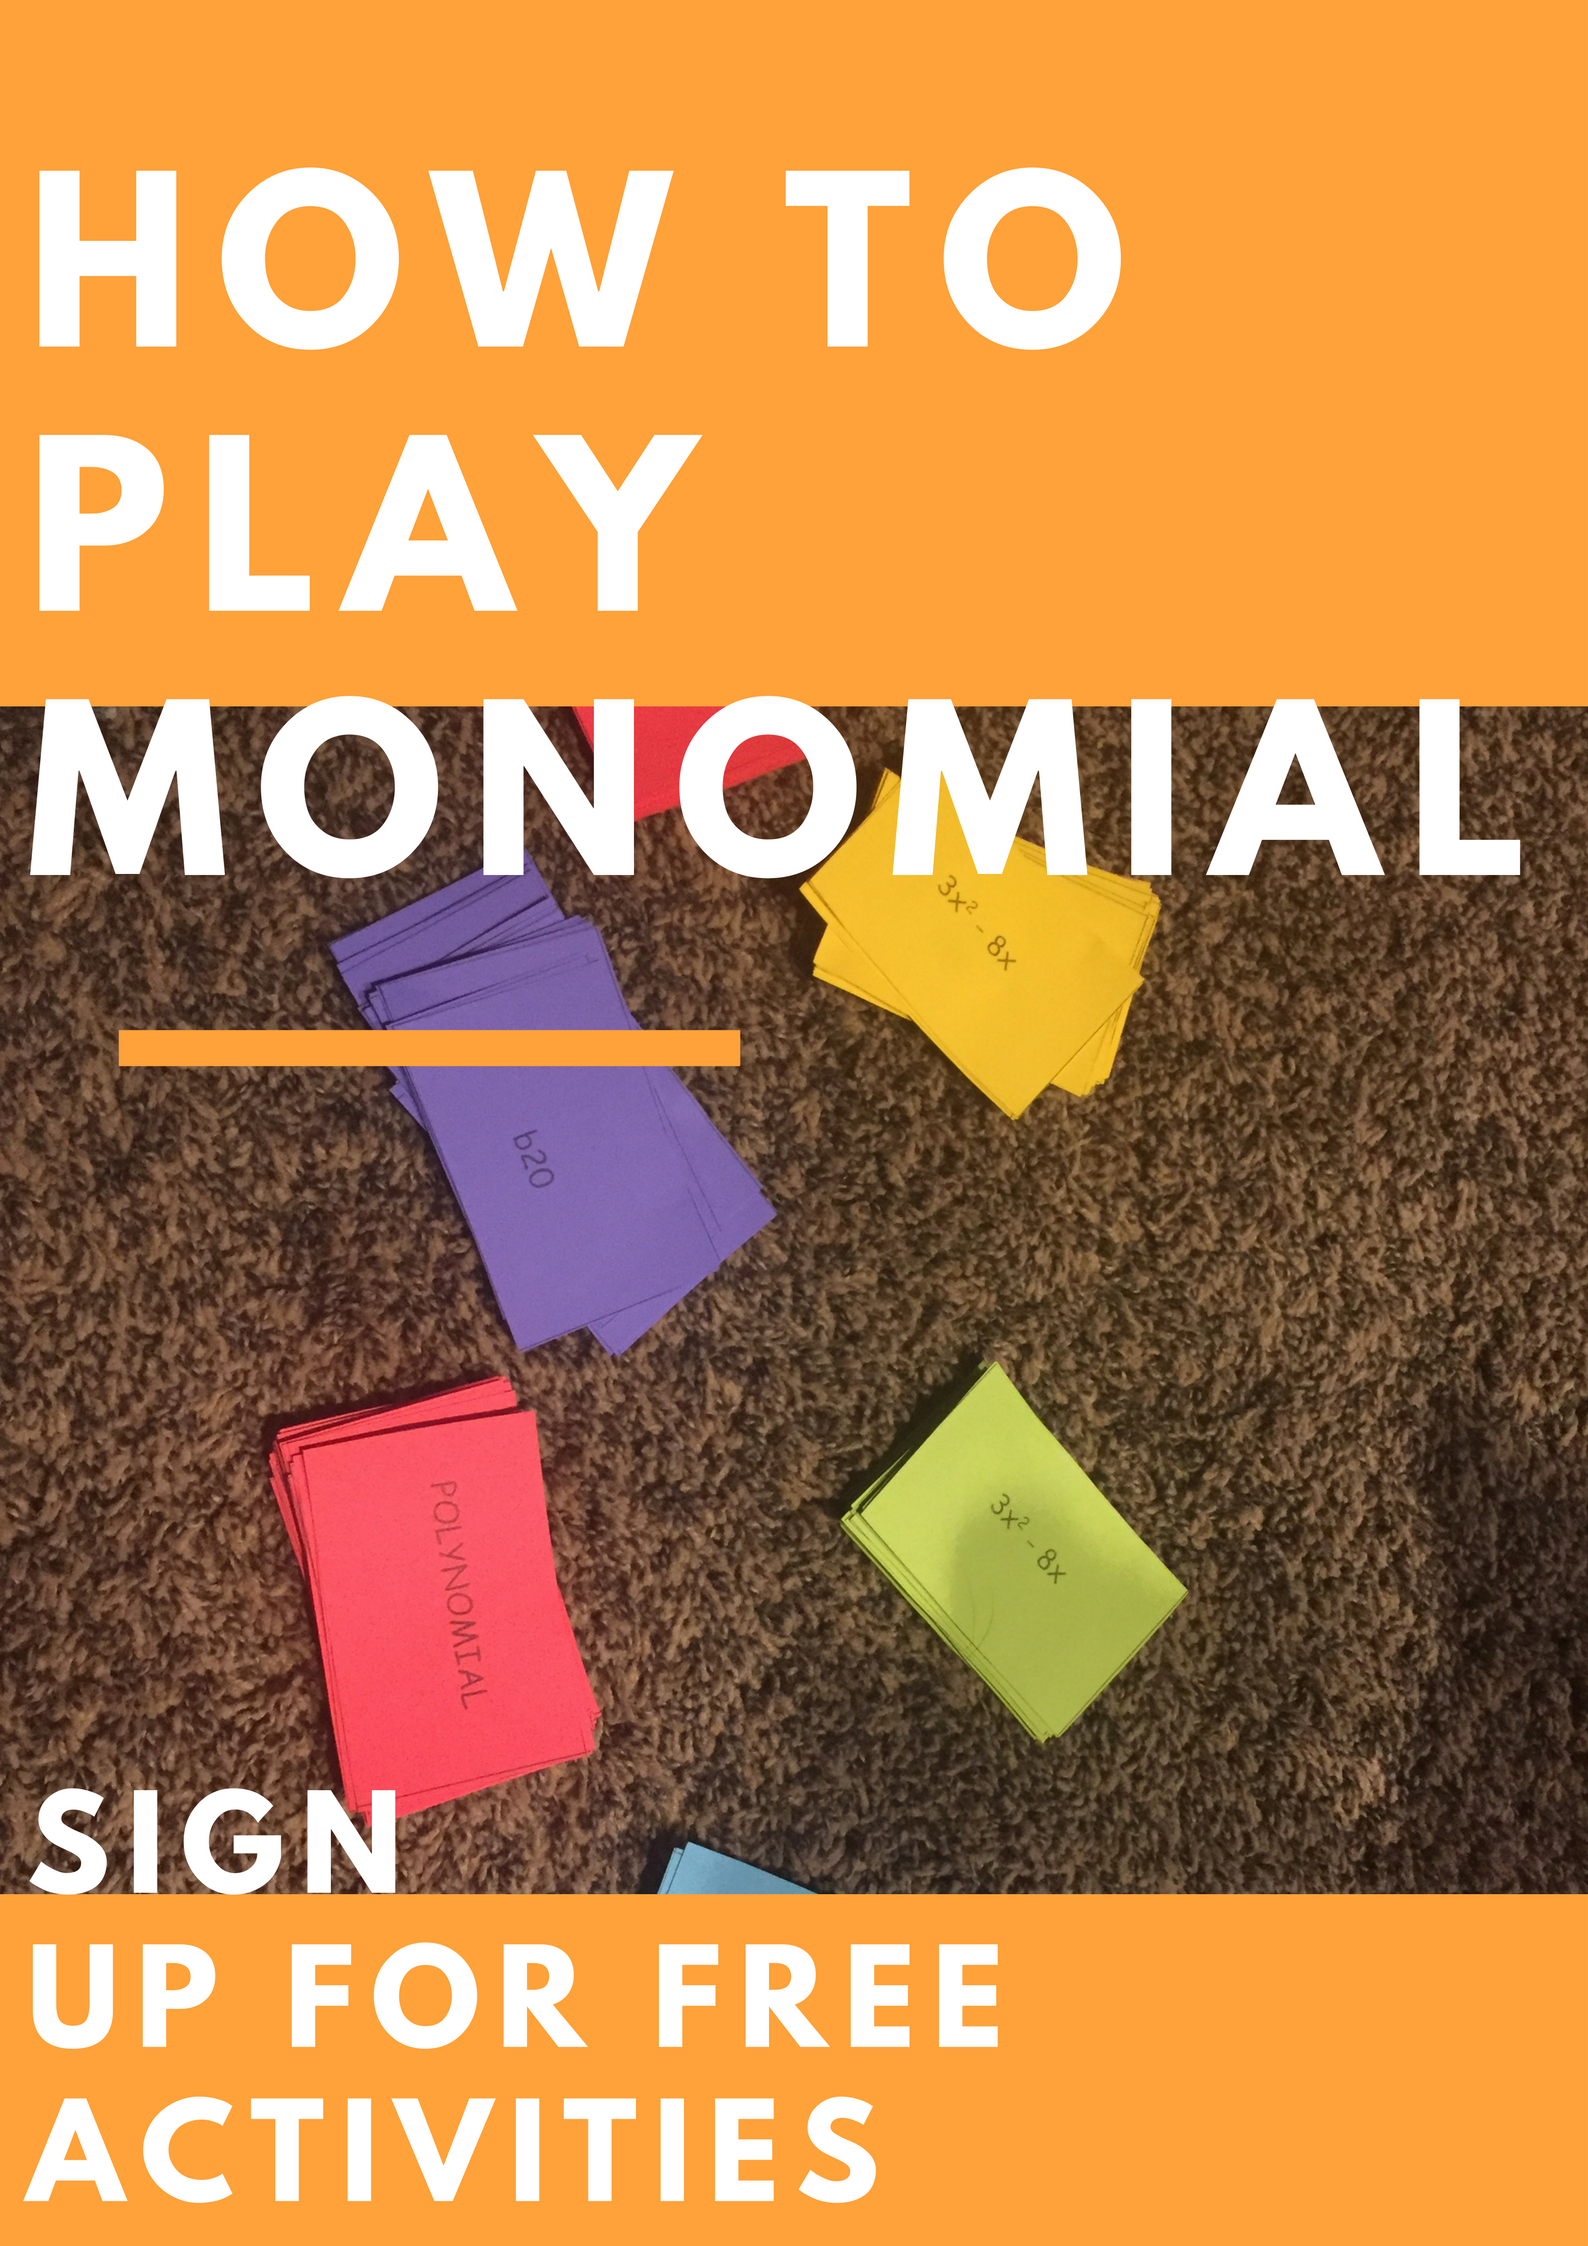 How to play monomial! | Algebra activities, Algebra games and Math ...